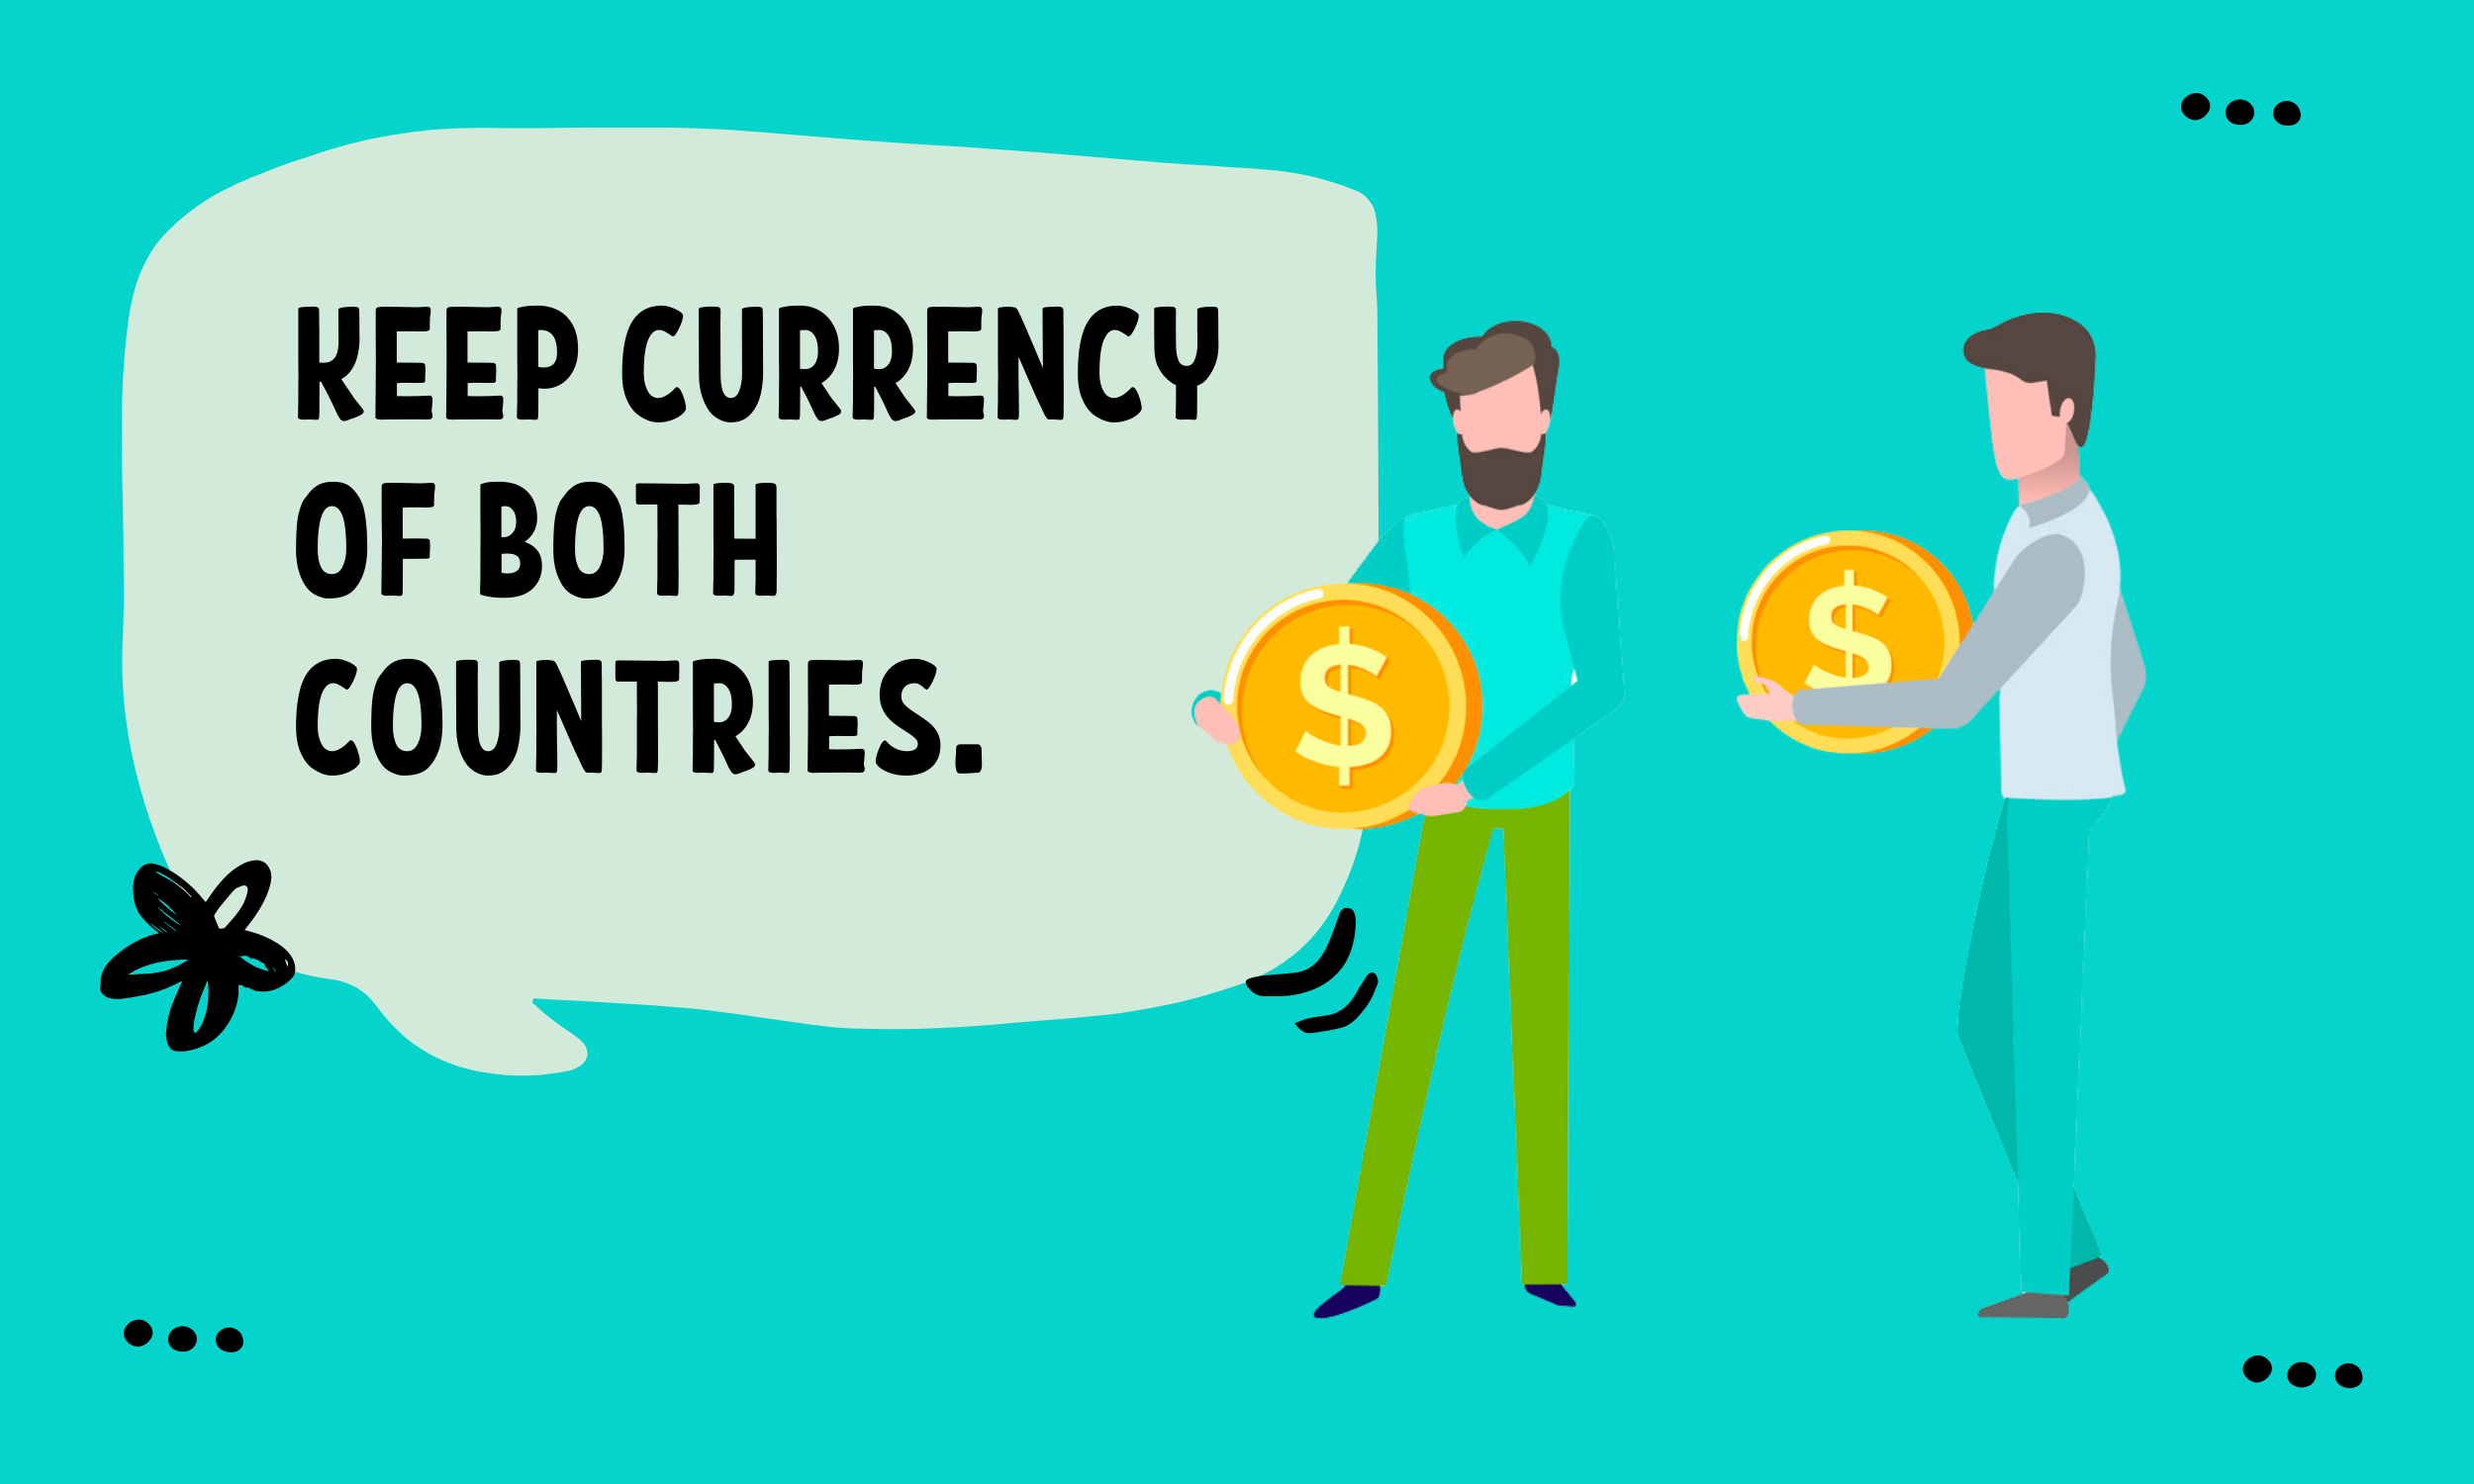 KEEP-CURRENCY-OF-BOTH-COUNTRIES